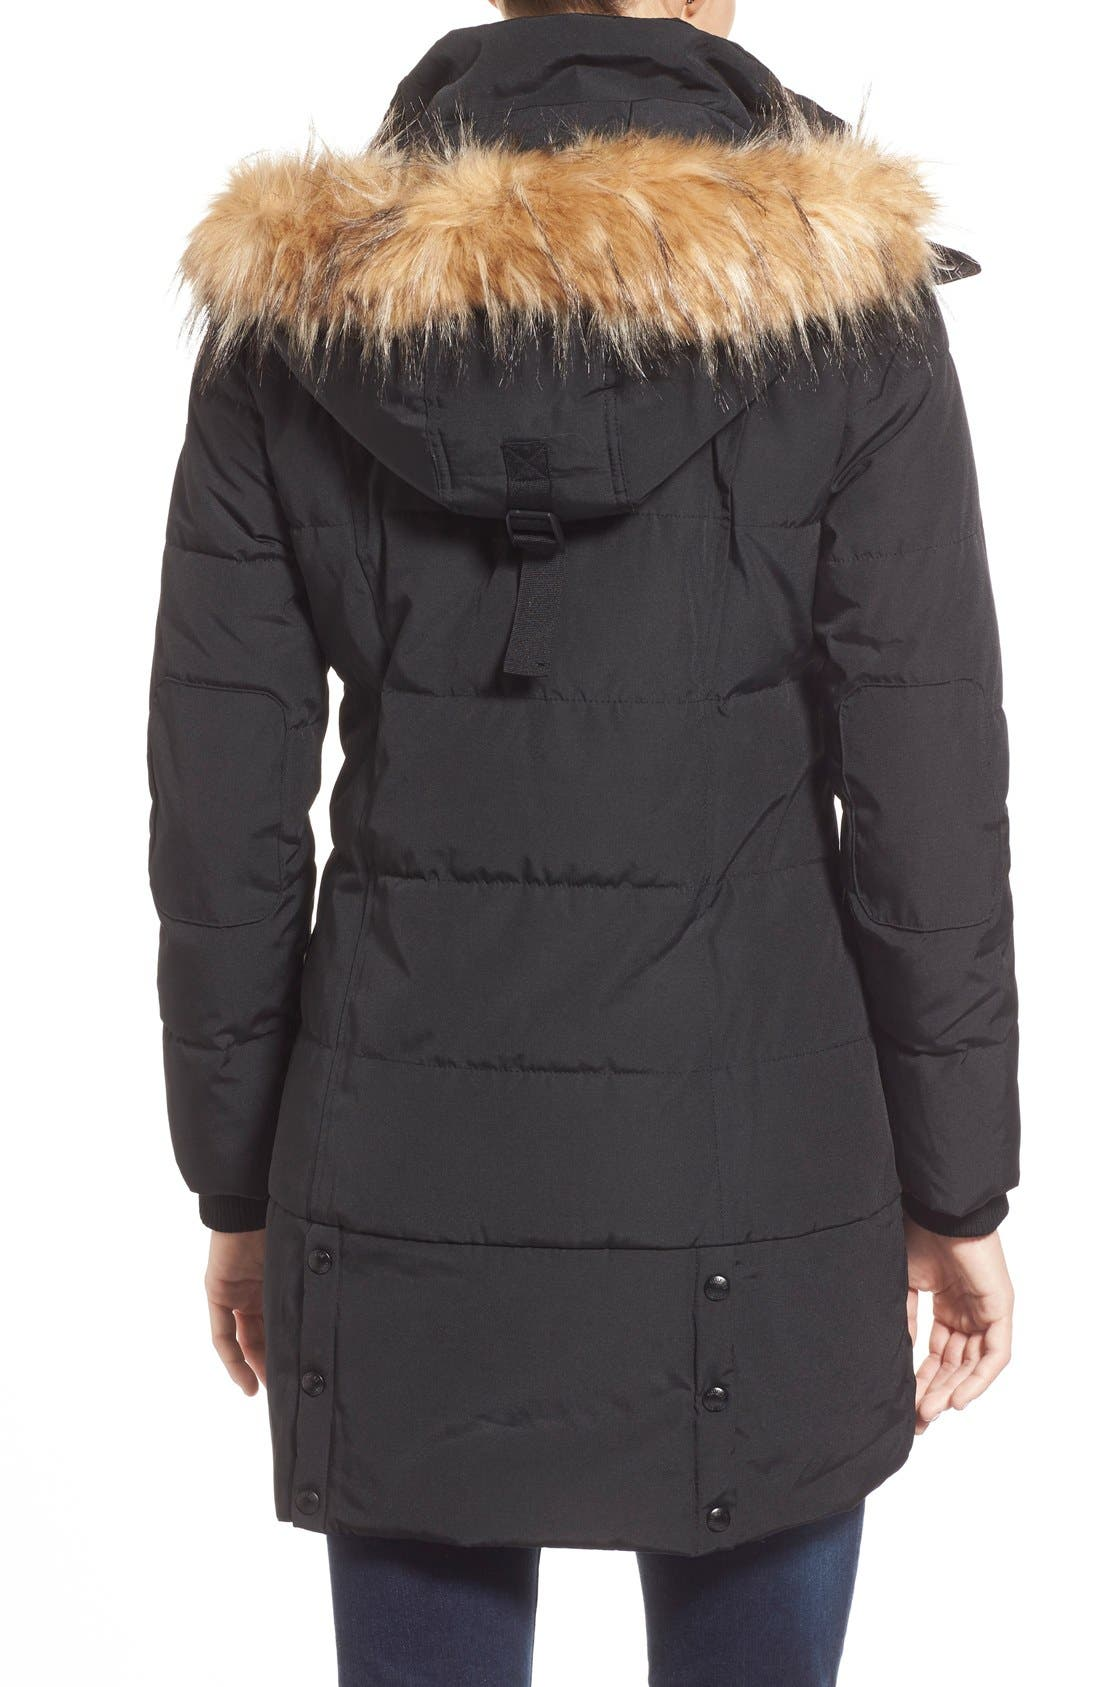 'Expedition' Quilted Parka with Faux Fur Trim,                             Alternate thumbnail 7, color,